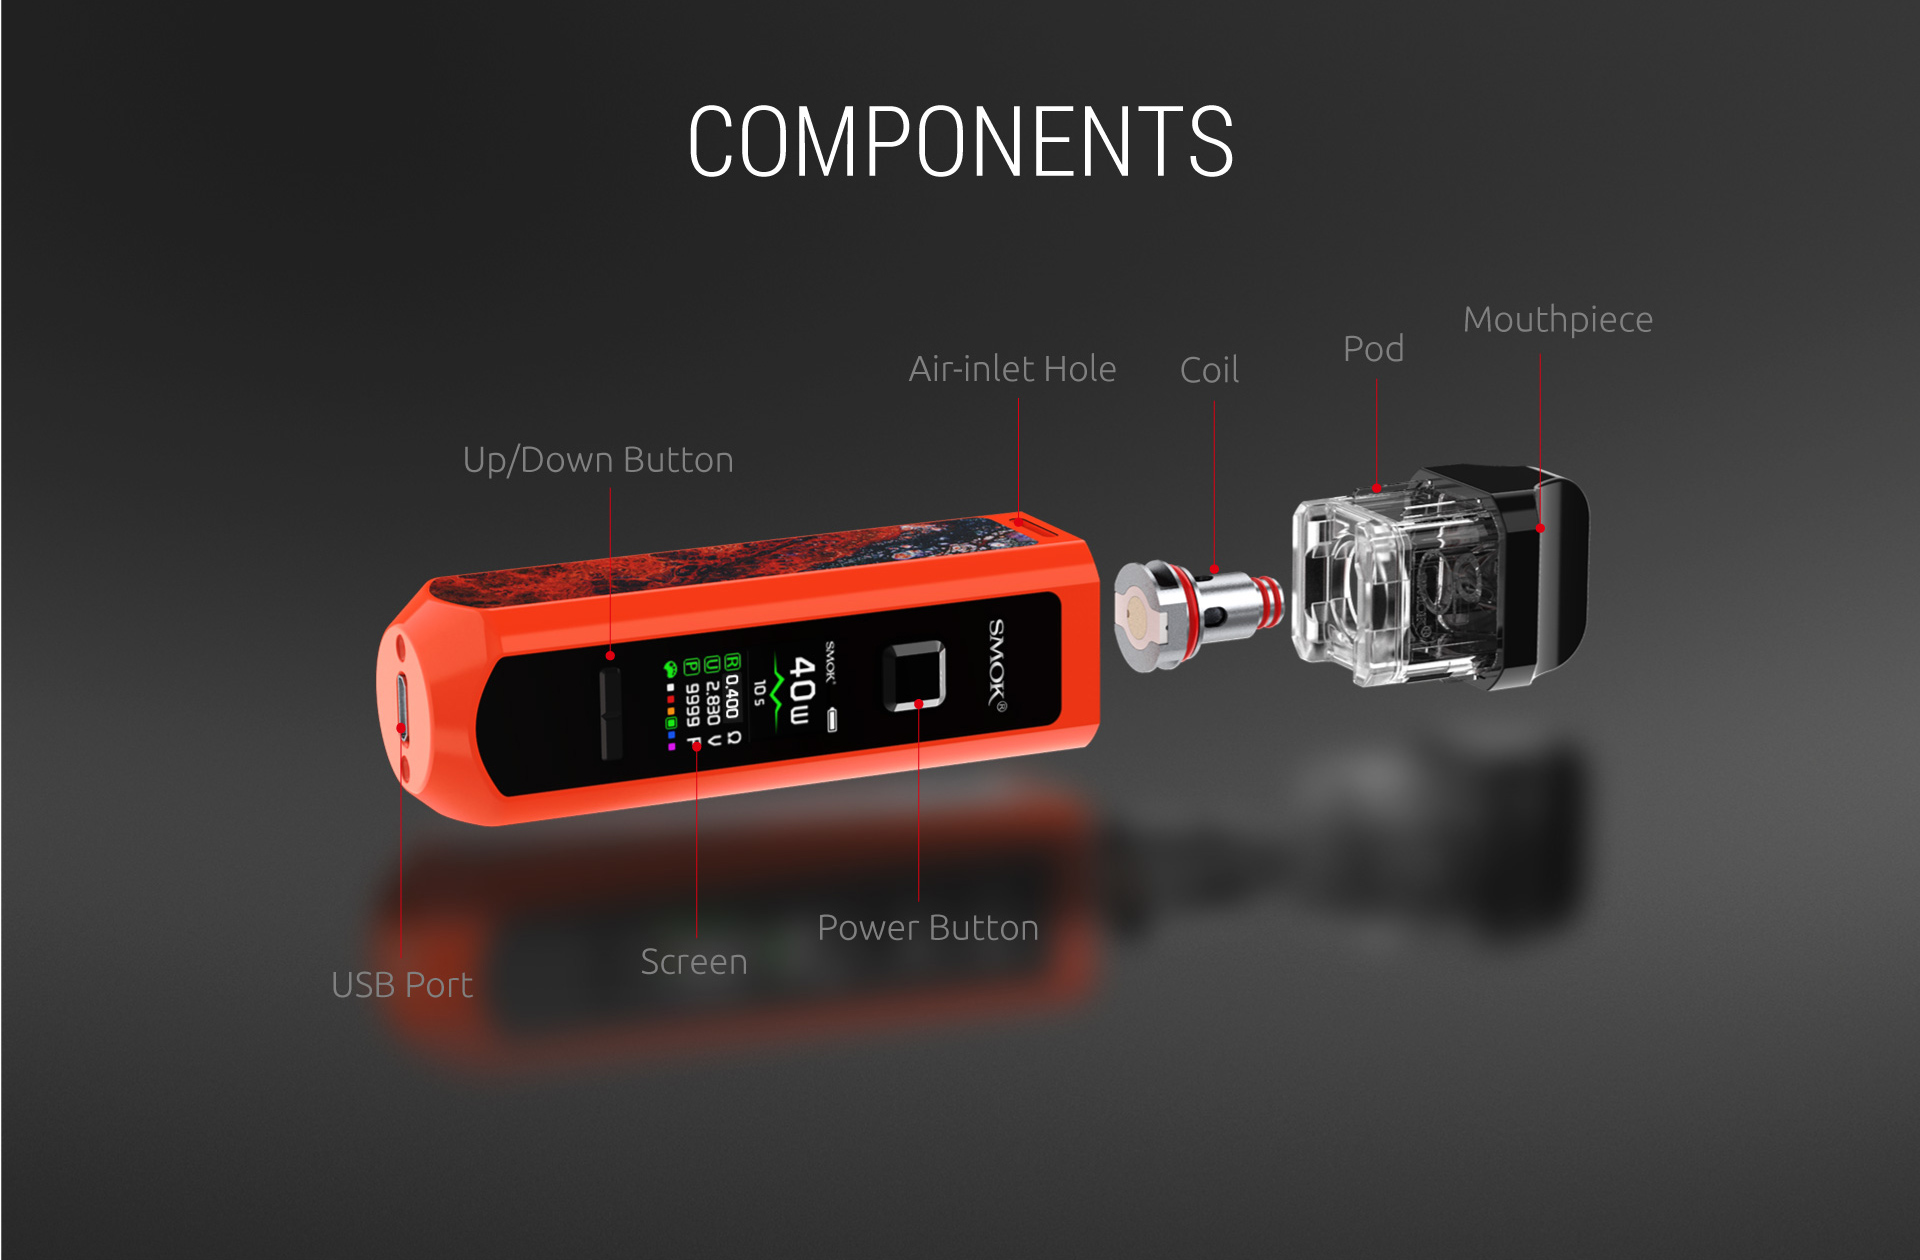 Smok RPM40 Pod Kit Components